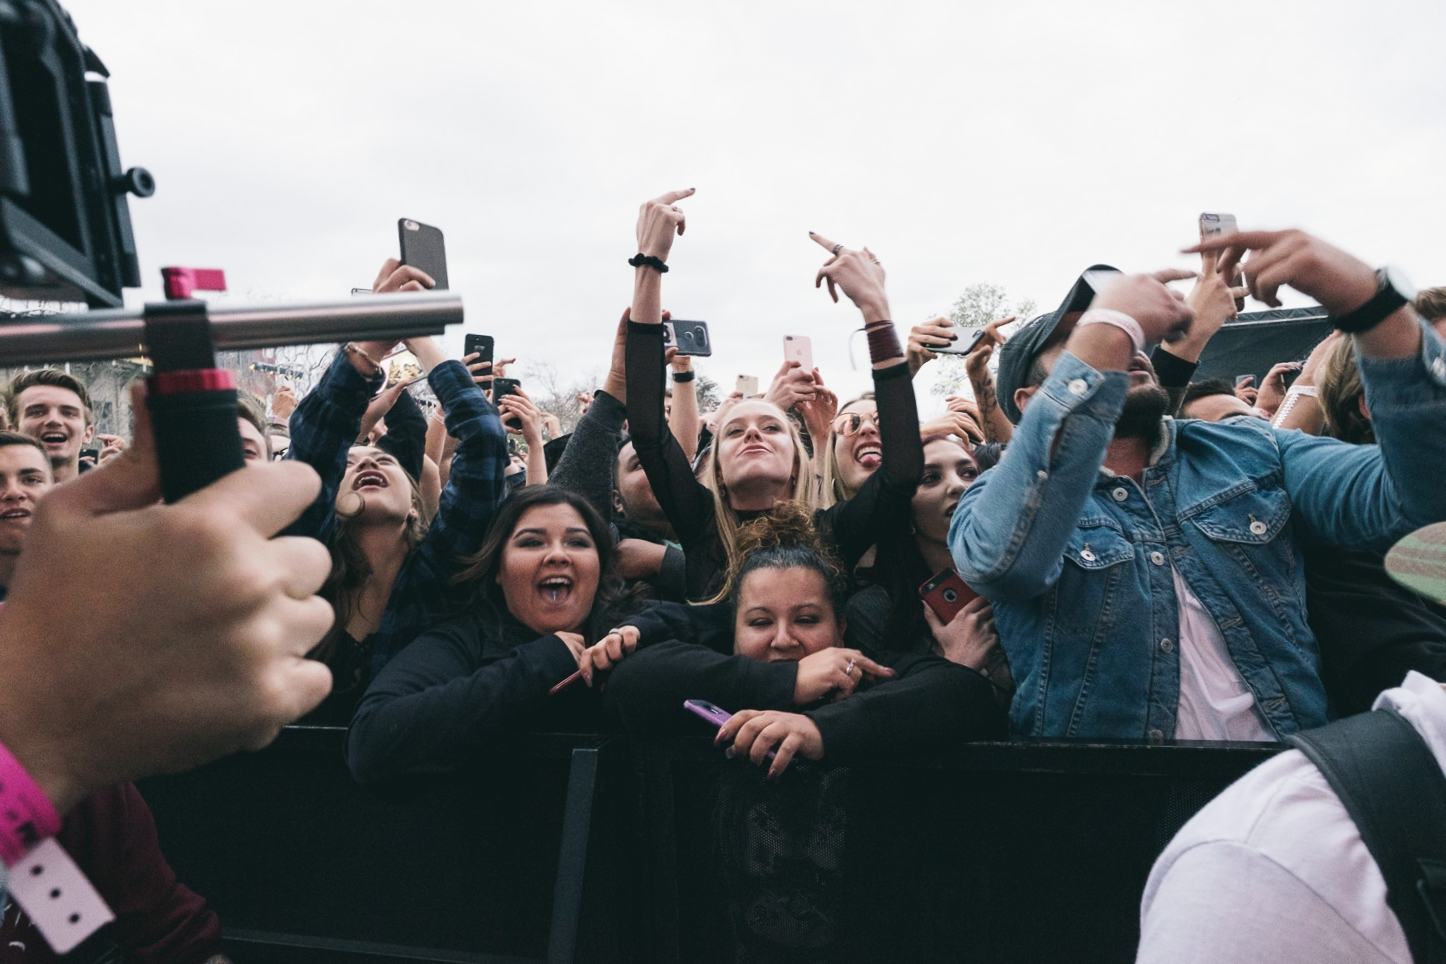 airandstyle_2017 (38 of 84).jpg